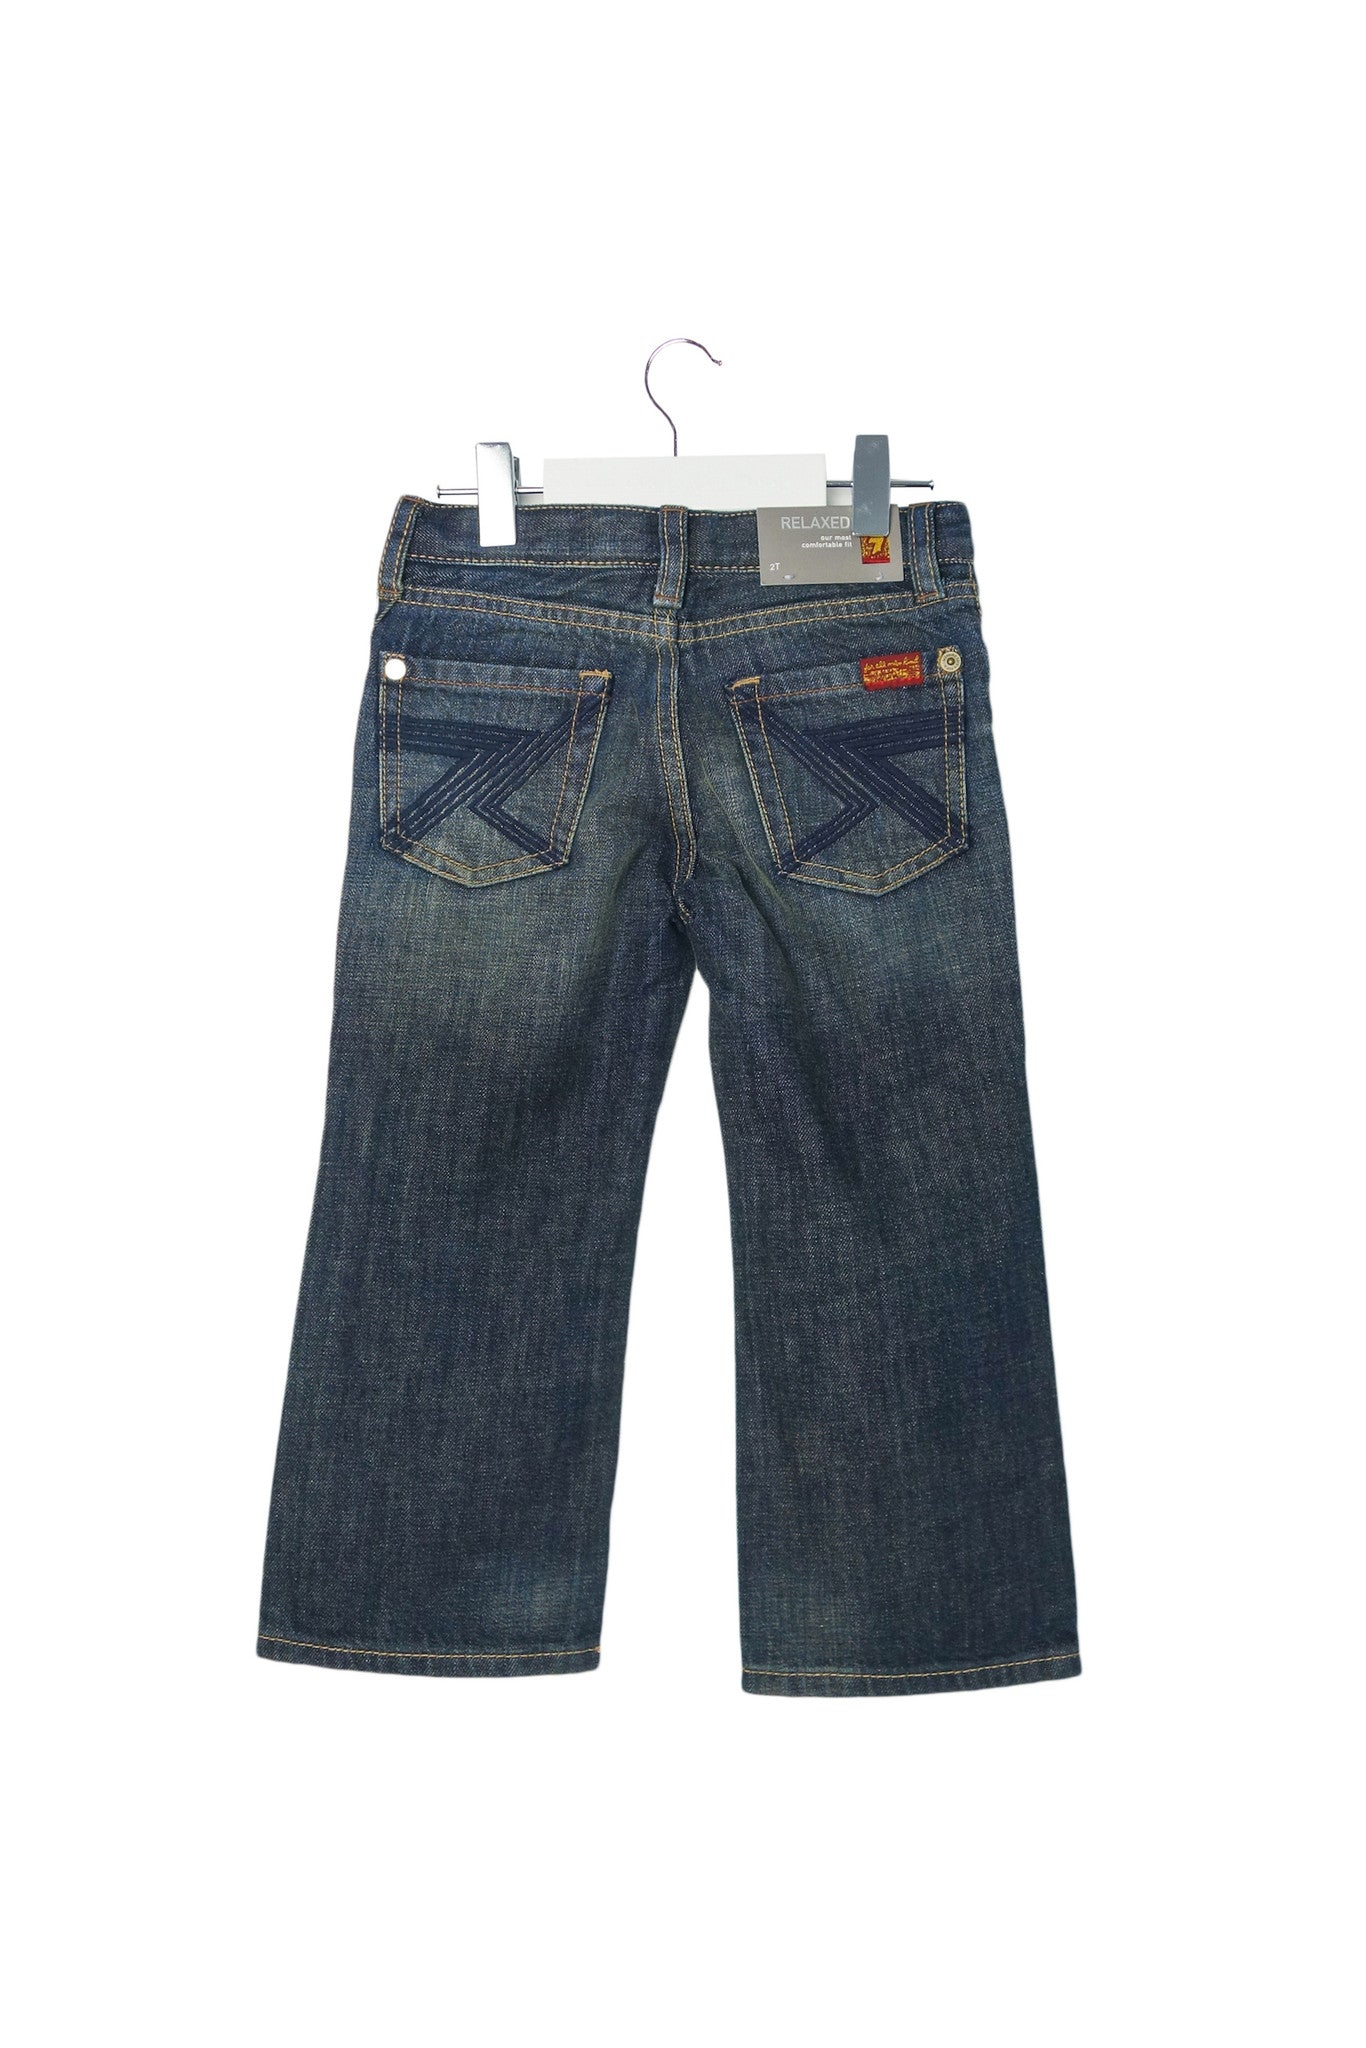 10003209 7 For All Mankind Kids~Jeans 2T at Retykle